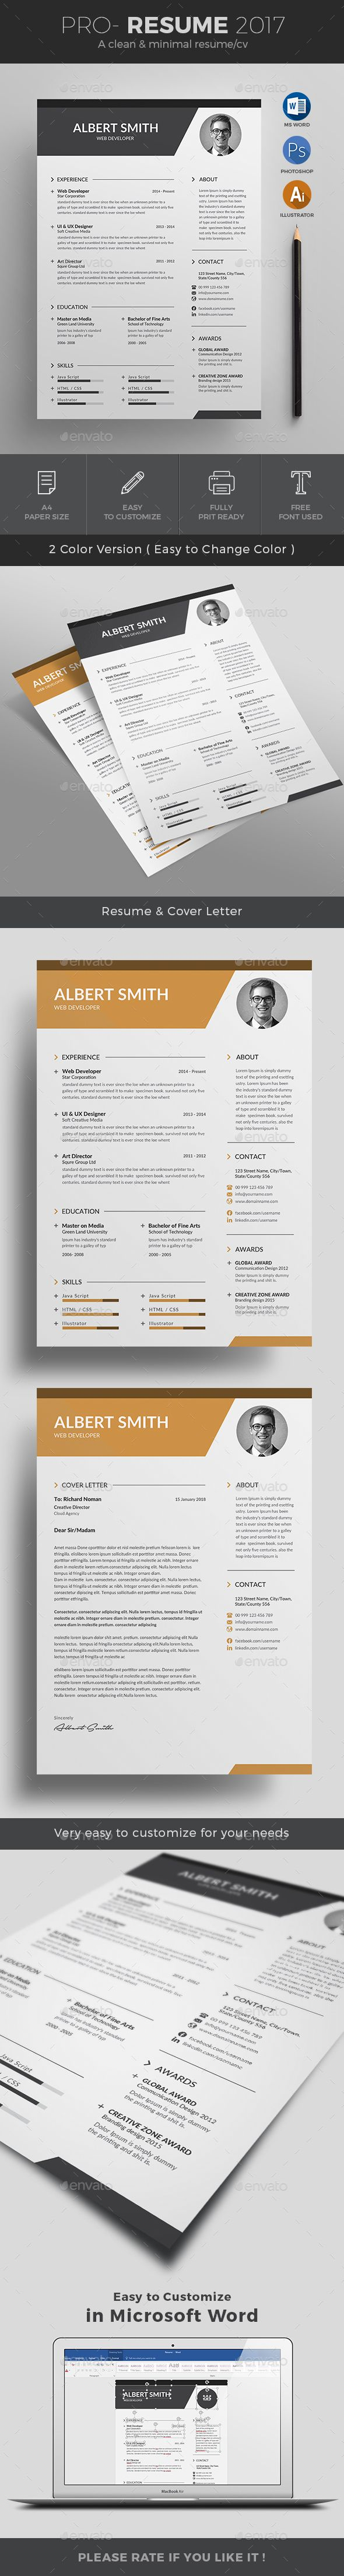 25 unique resume templates free ideas on pinterest